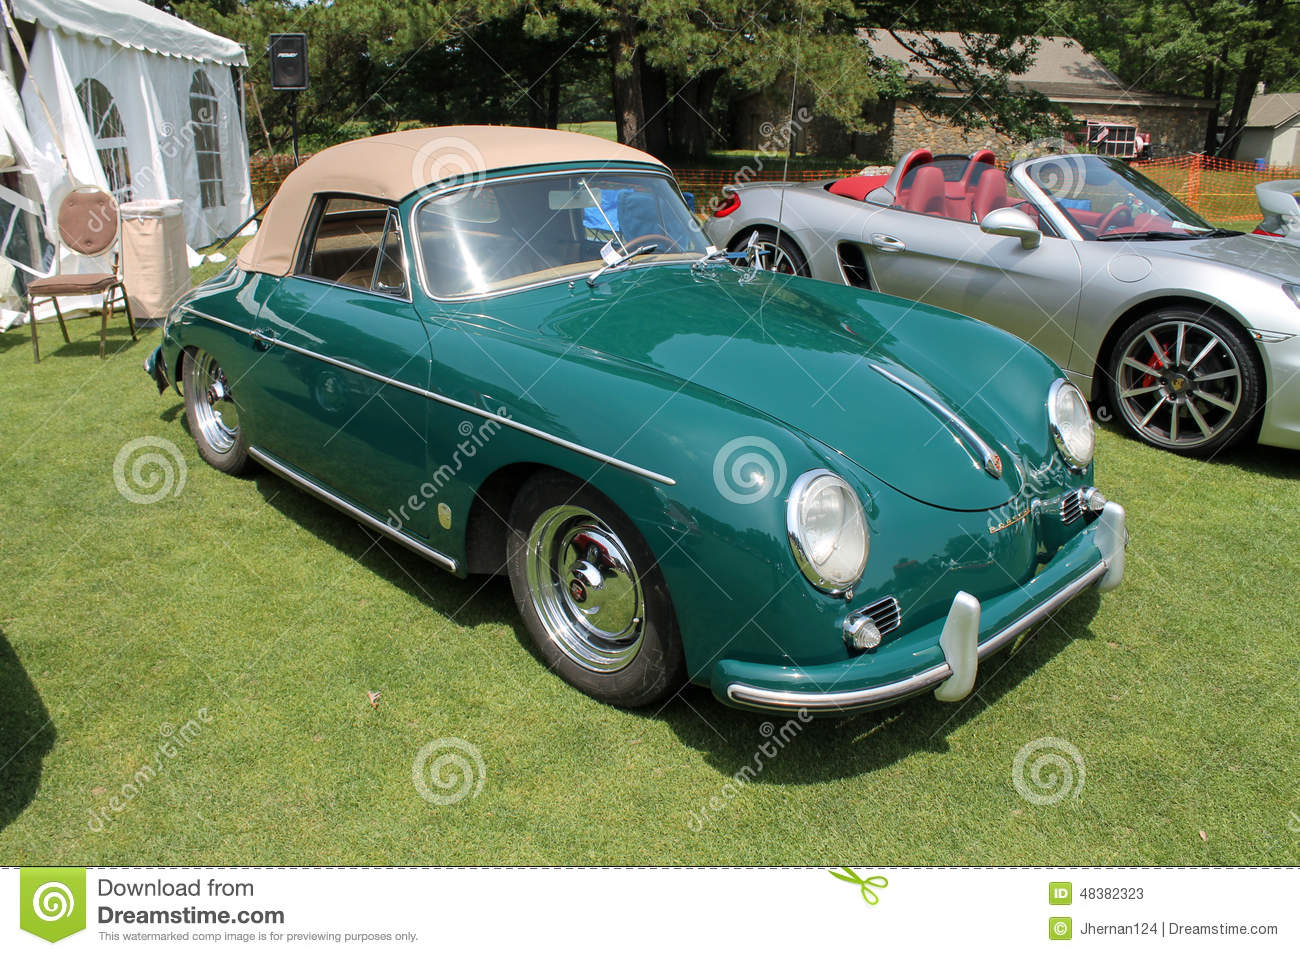 Classic gtrrn Porsche 356 cabrio sports car on display outdoors in a